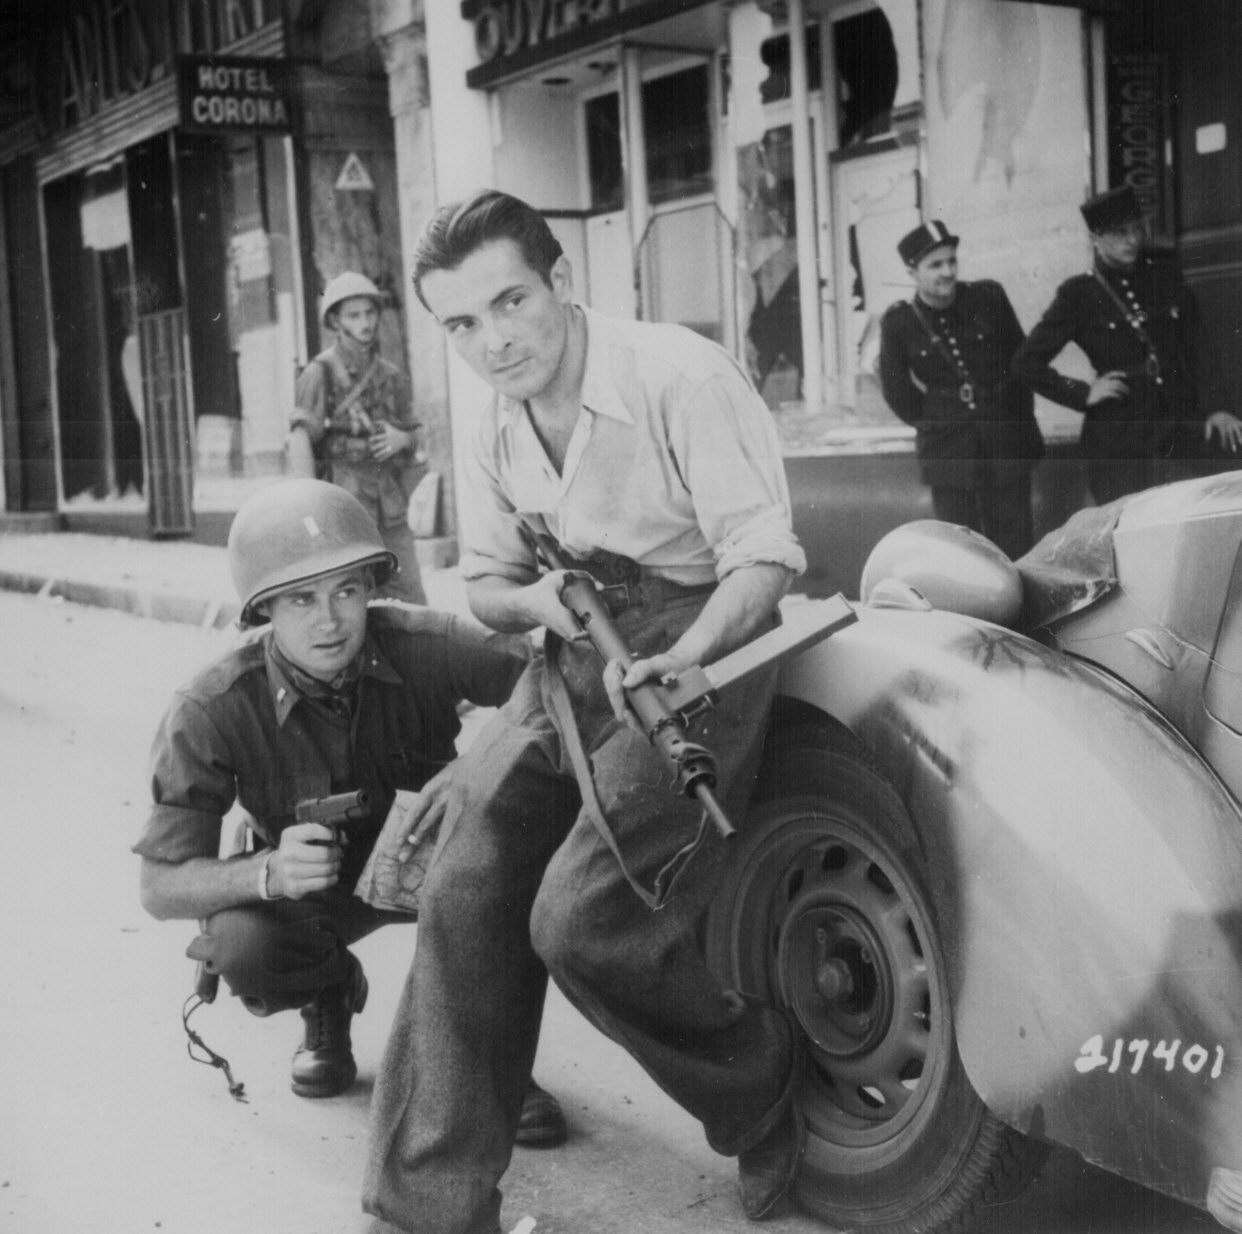 A French Partisan and an American Soldier (World War II)